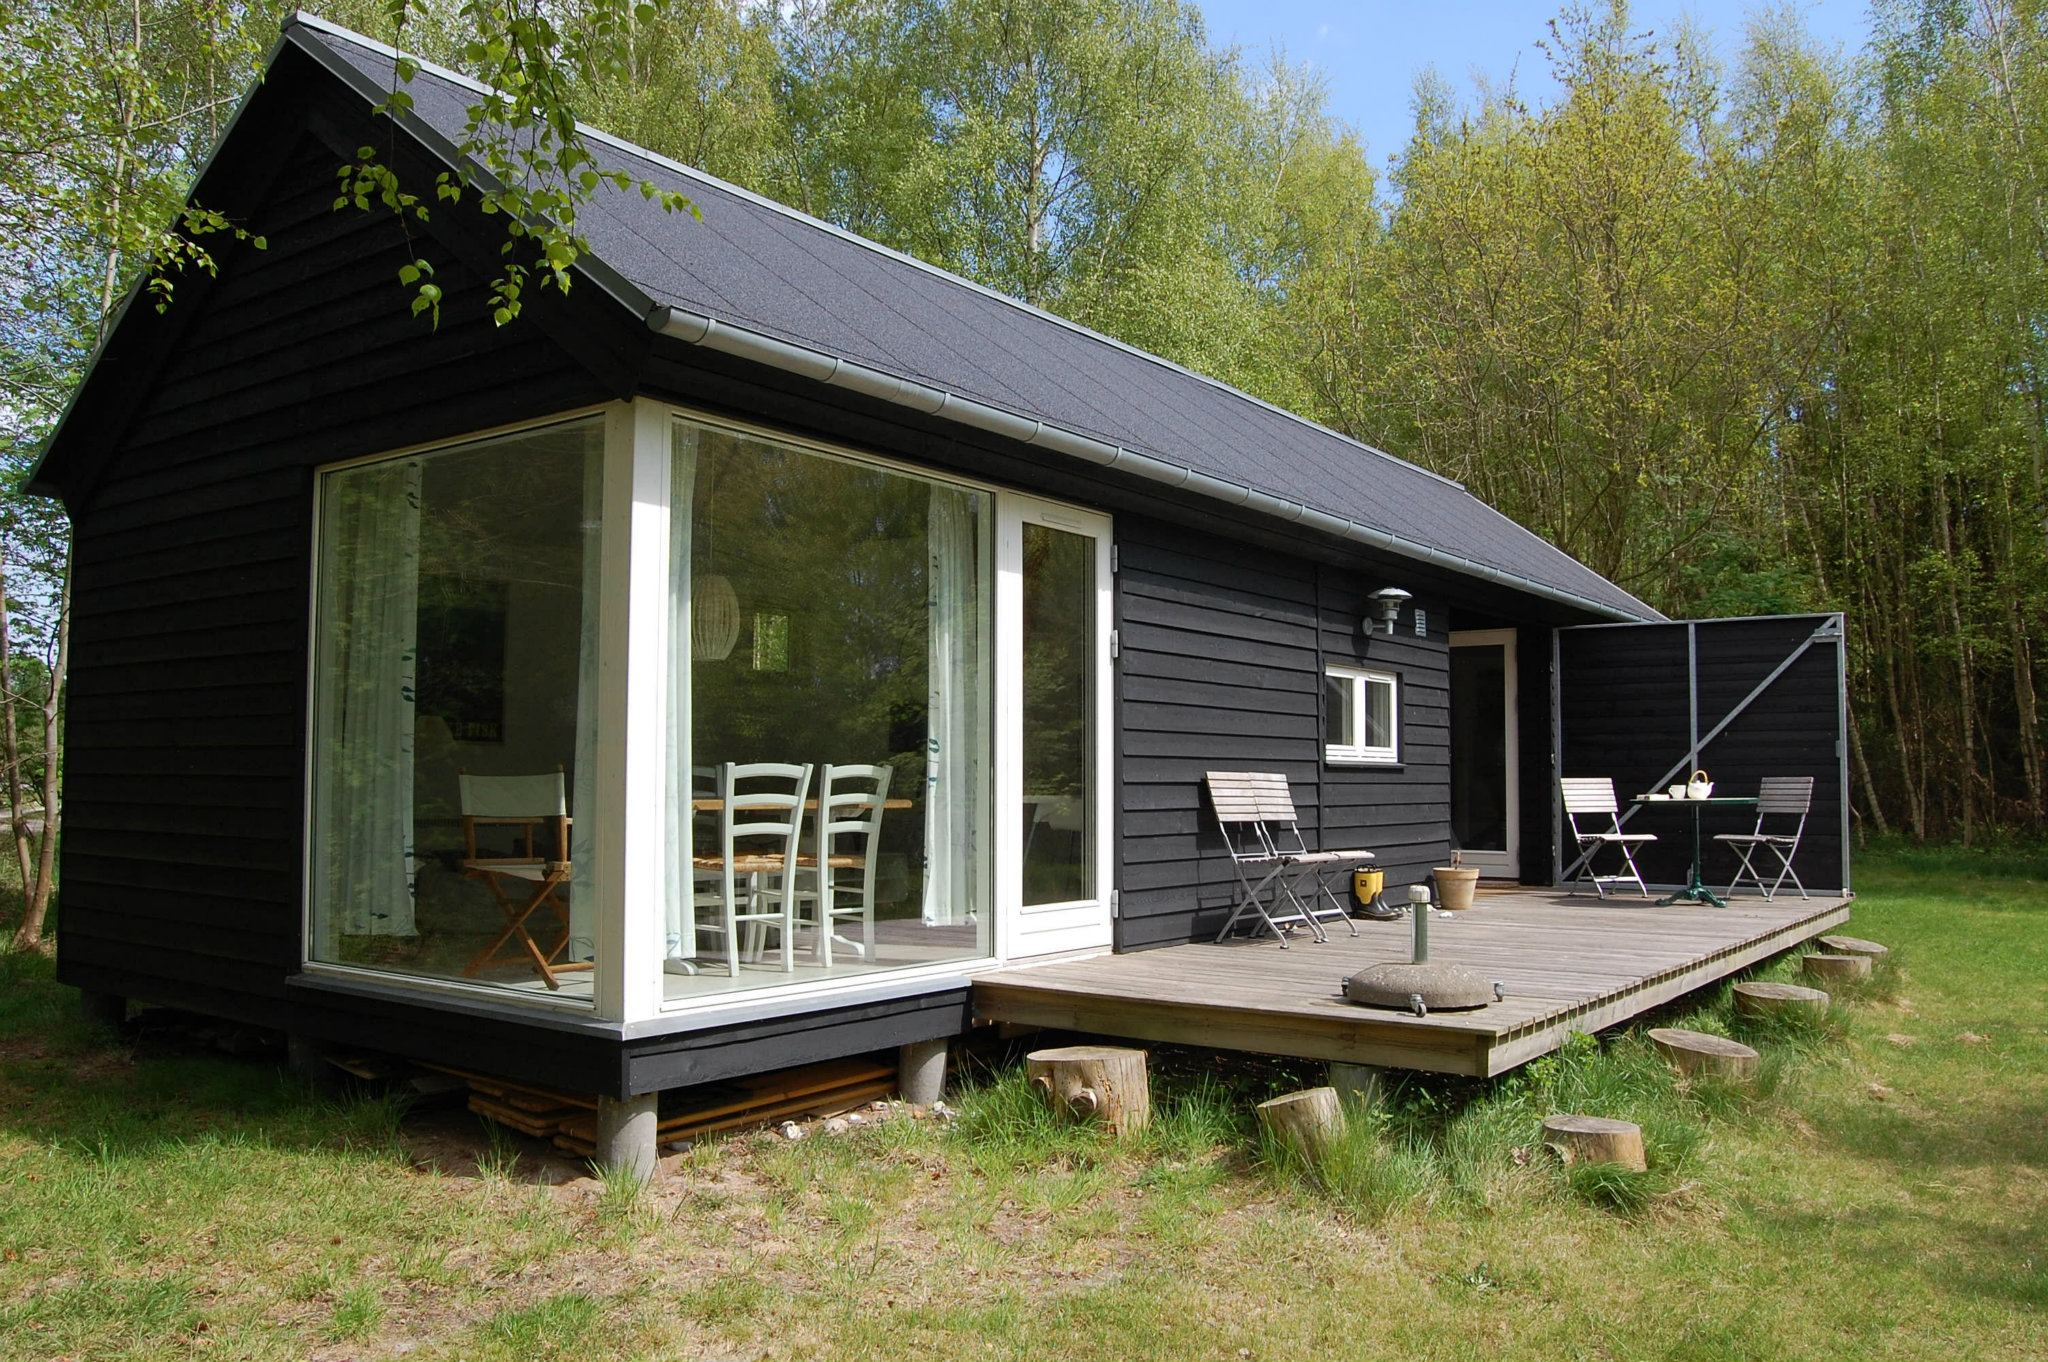 L ngehuset a modular holiday house by m n huset Two story holiday homes